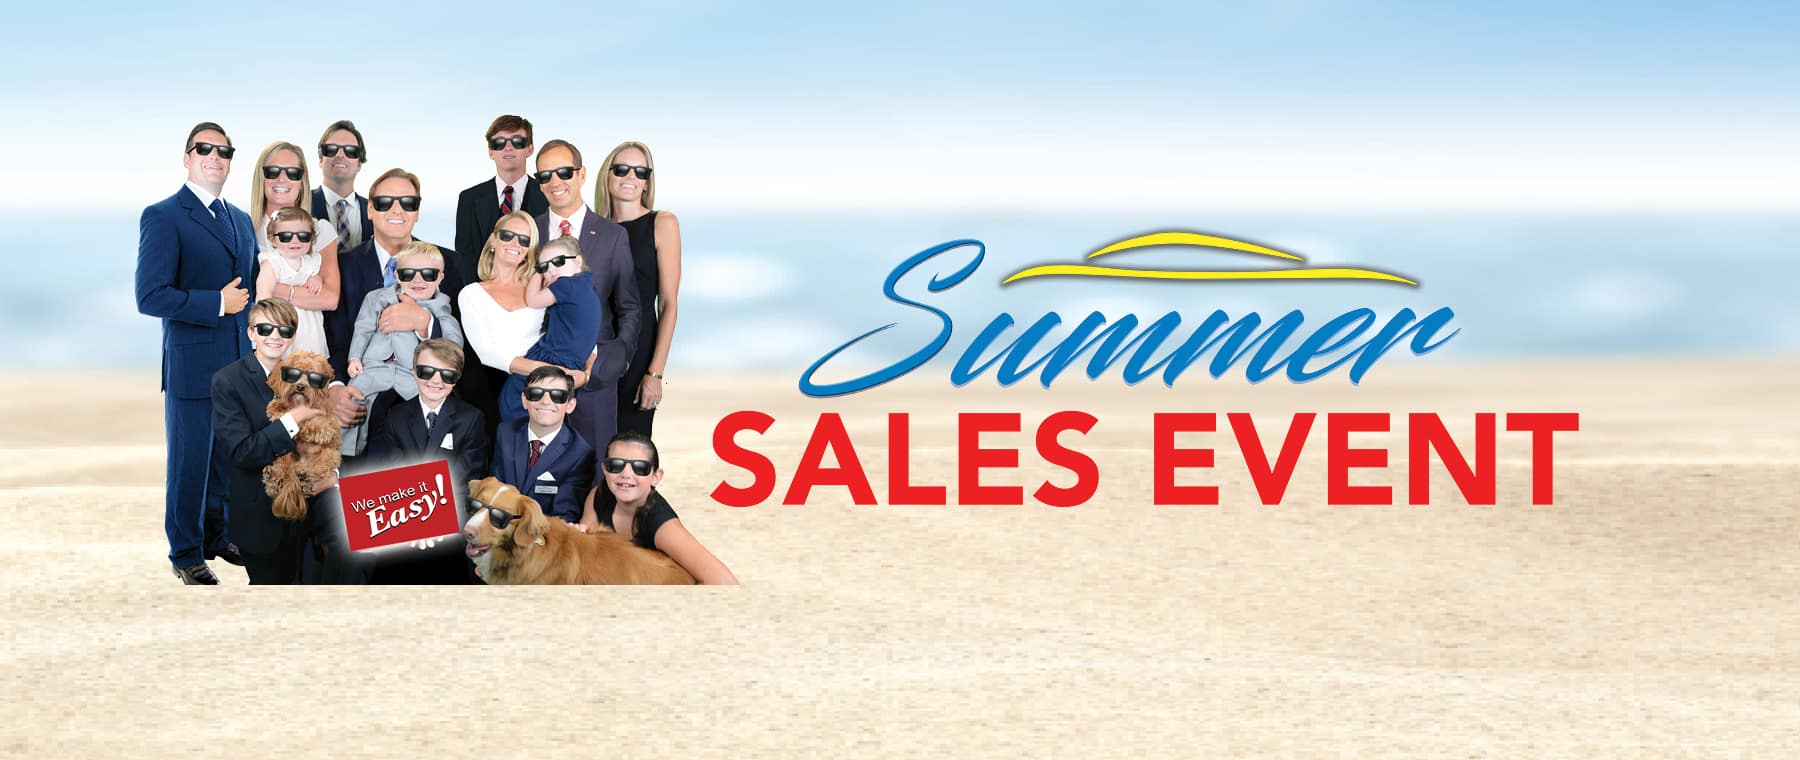 Brian Kelly with Family at Beach for Kelly INFINITI Summer Sales Event